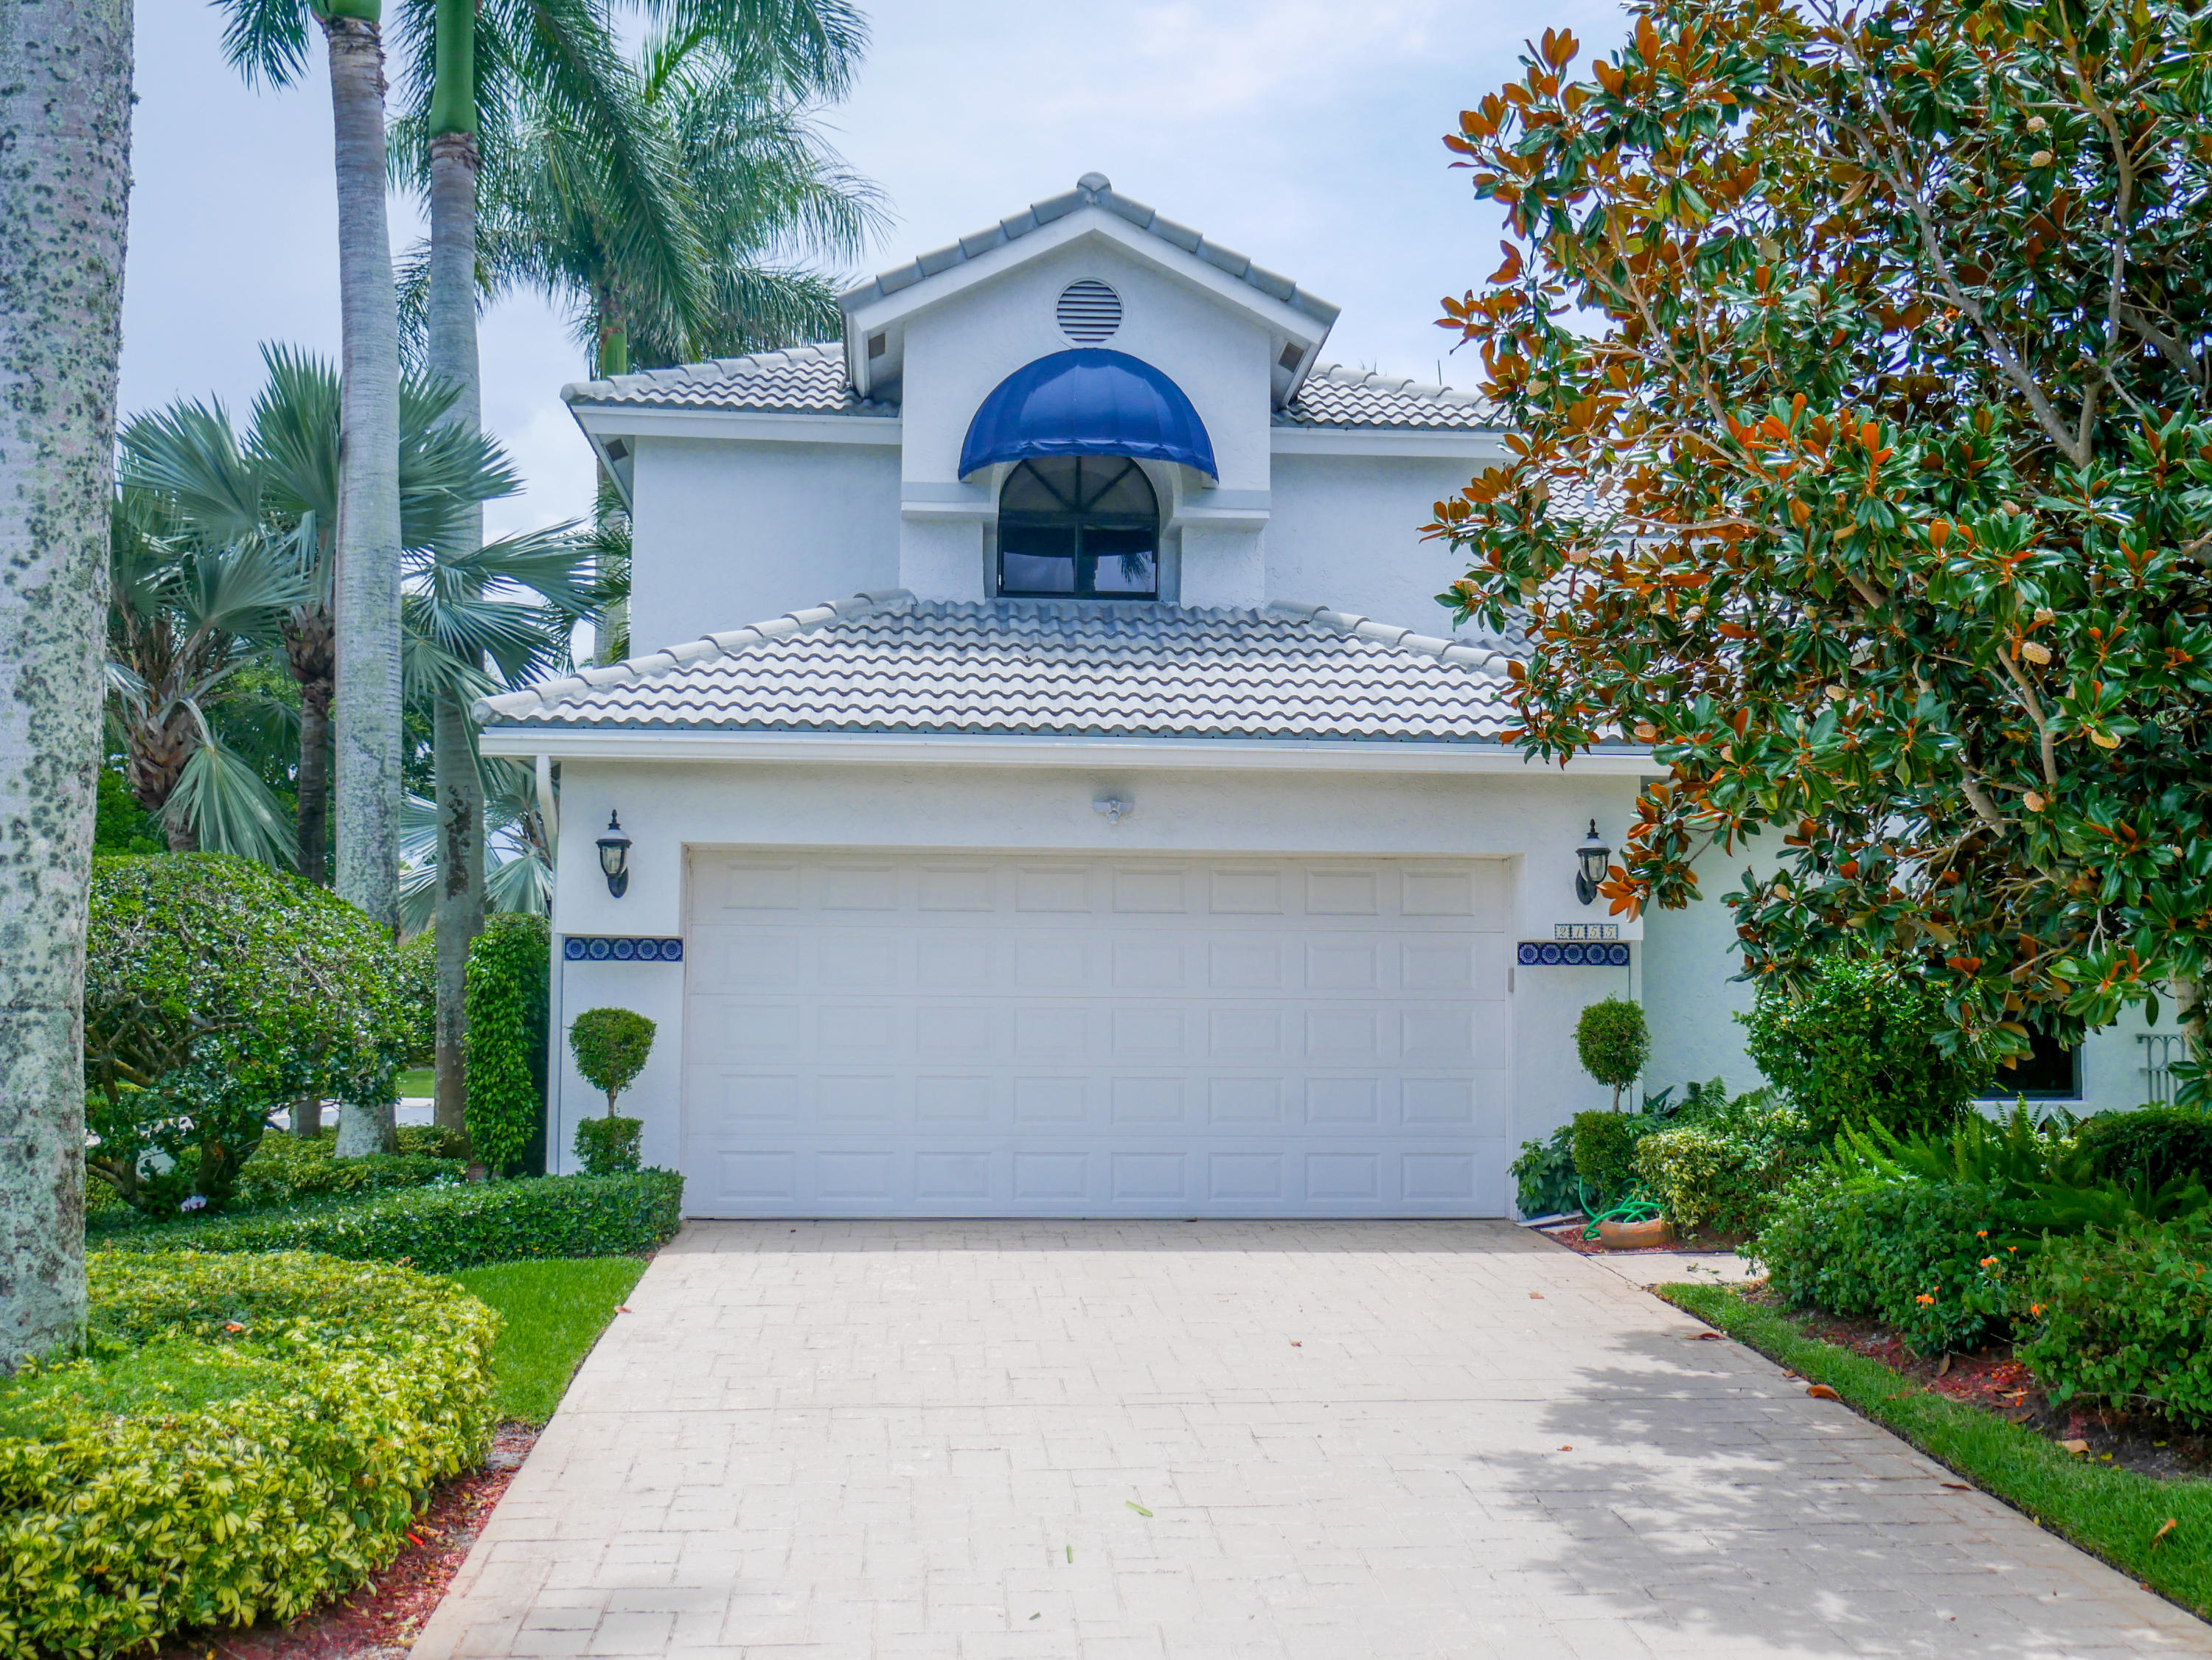 2155 Nw 60th Circle, Boca Raton, FL 33496